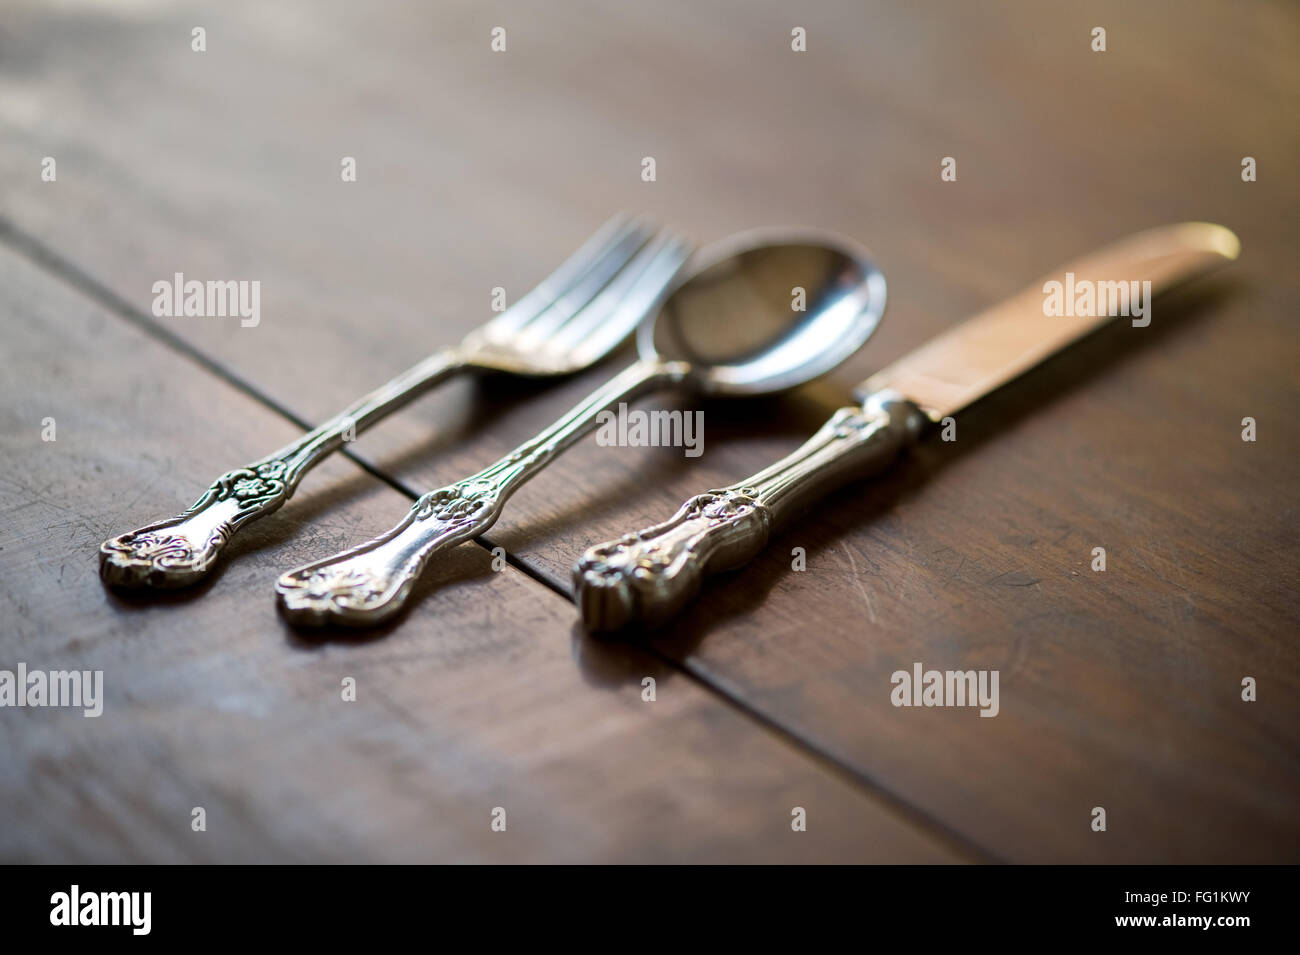 Silverware on table ; India - Stock Image